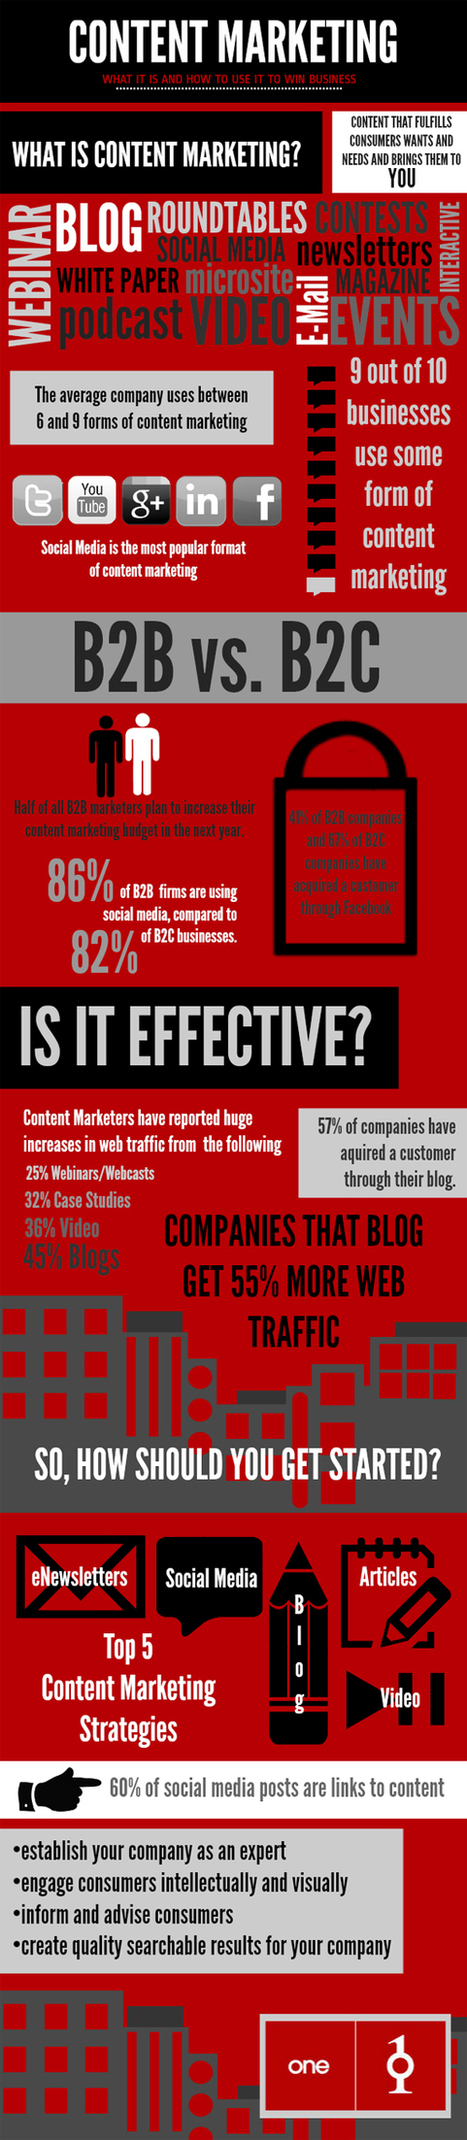 How To Use Content Marketing To Win Business - Infographic | Public Relations & Social Media Insight | Scoop.it